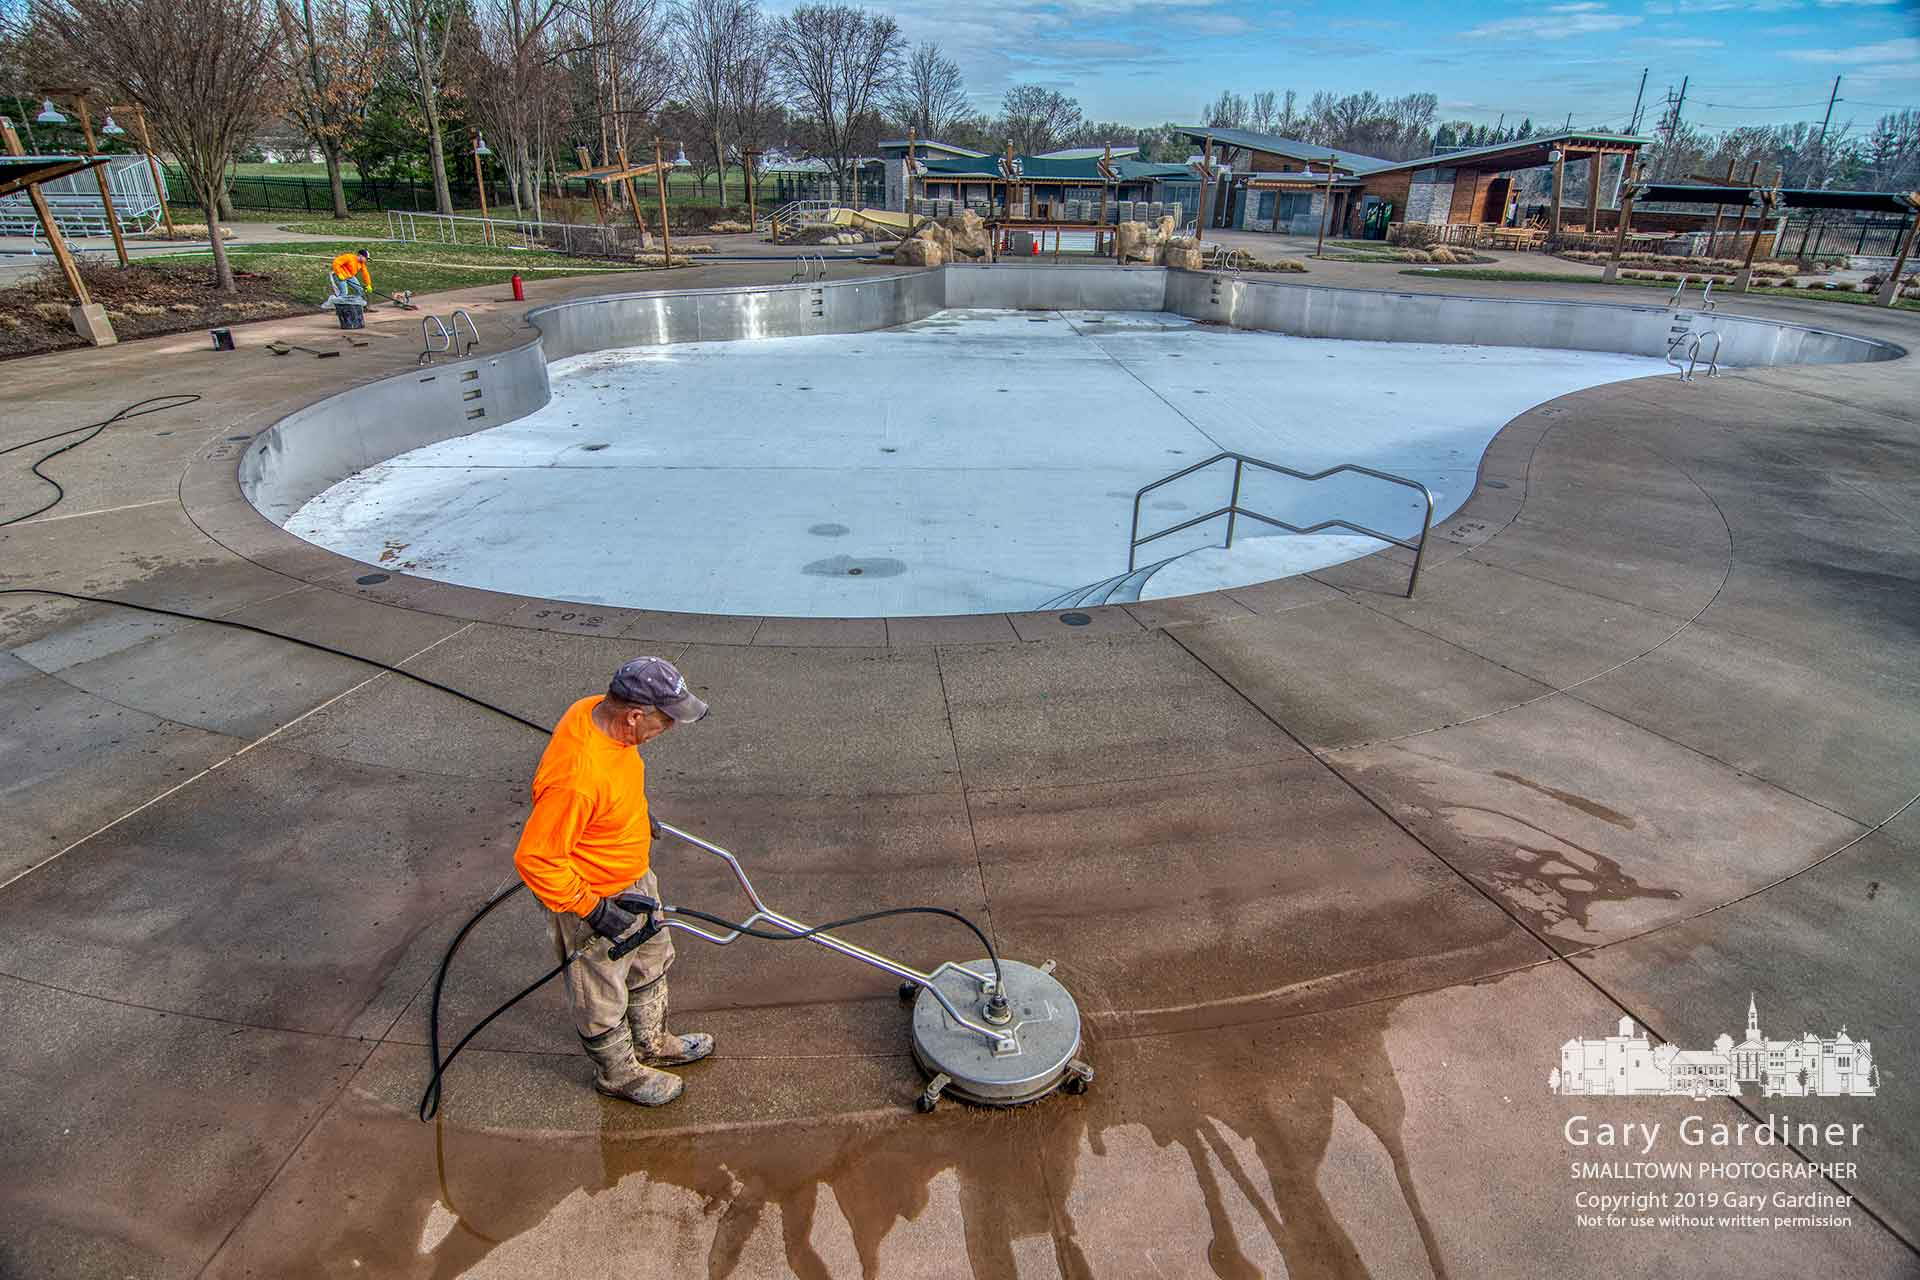 Preparations for an early opening of Highlands Park Aquatic Center continued Saturday as workers scrubbed and power washed the concrete walkways in the center. My Final Photo for April 6, 2019.